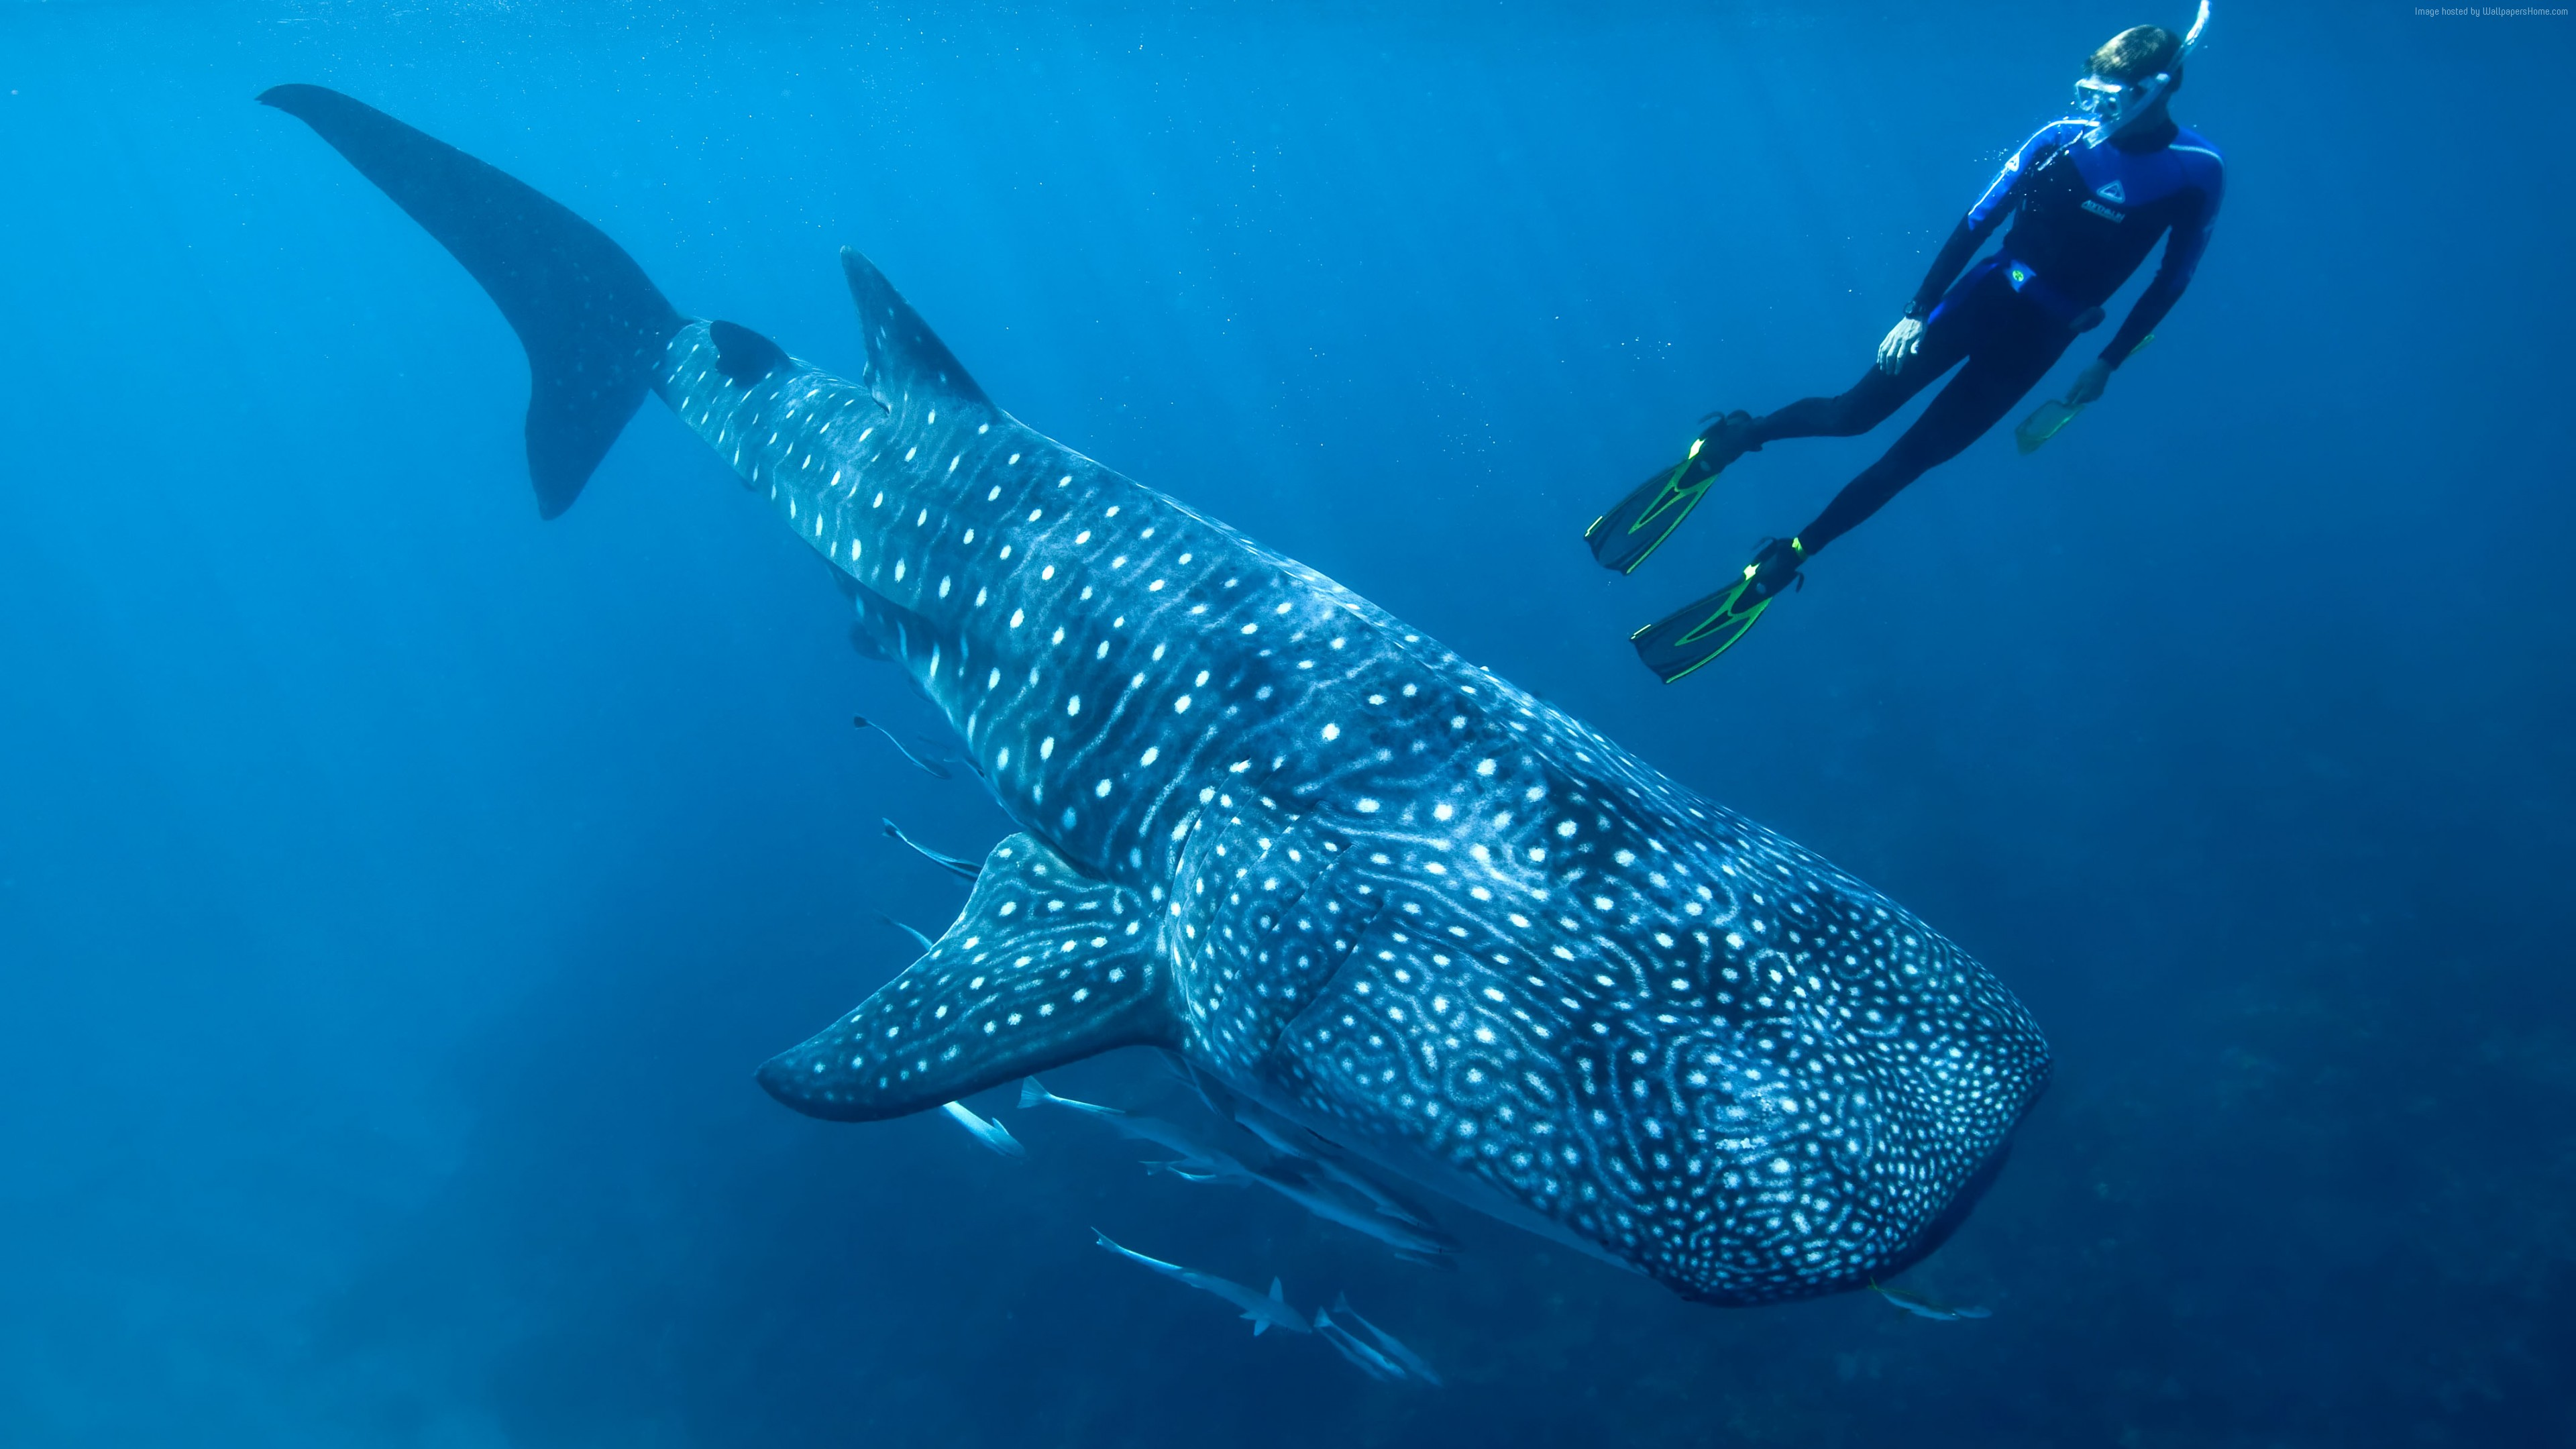 Wallpaper Whale shark, shark, atlantic, indian, pacific, ocean, water, underwater, blue, diving, tourism, fish, World&